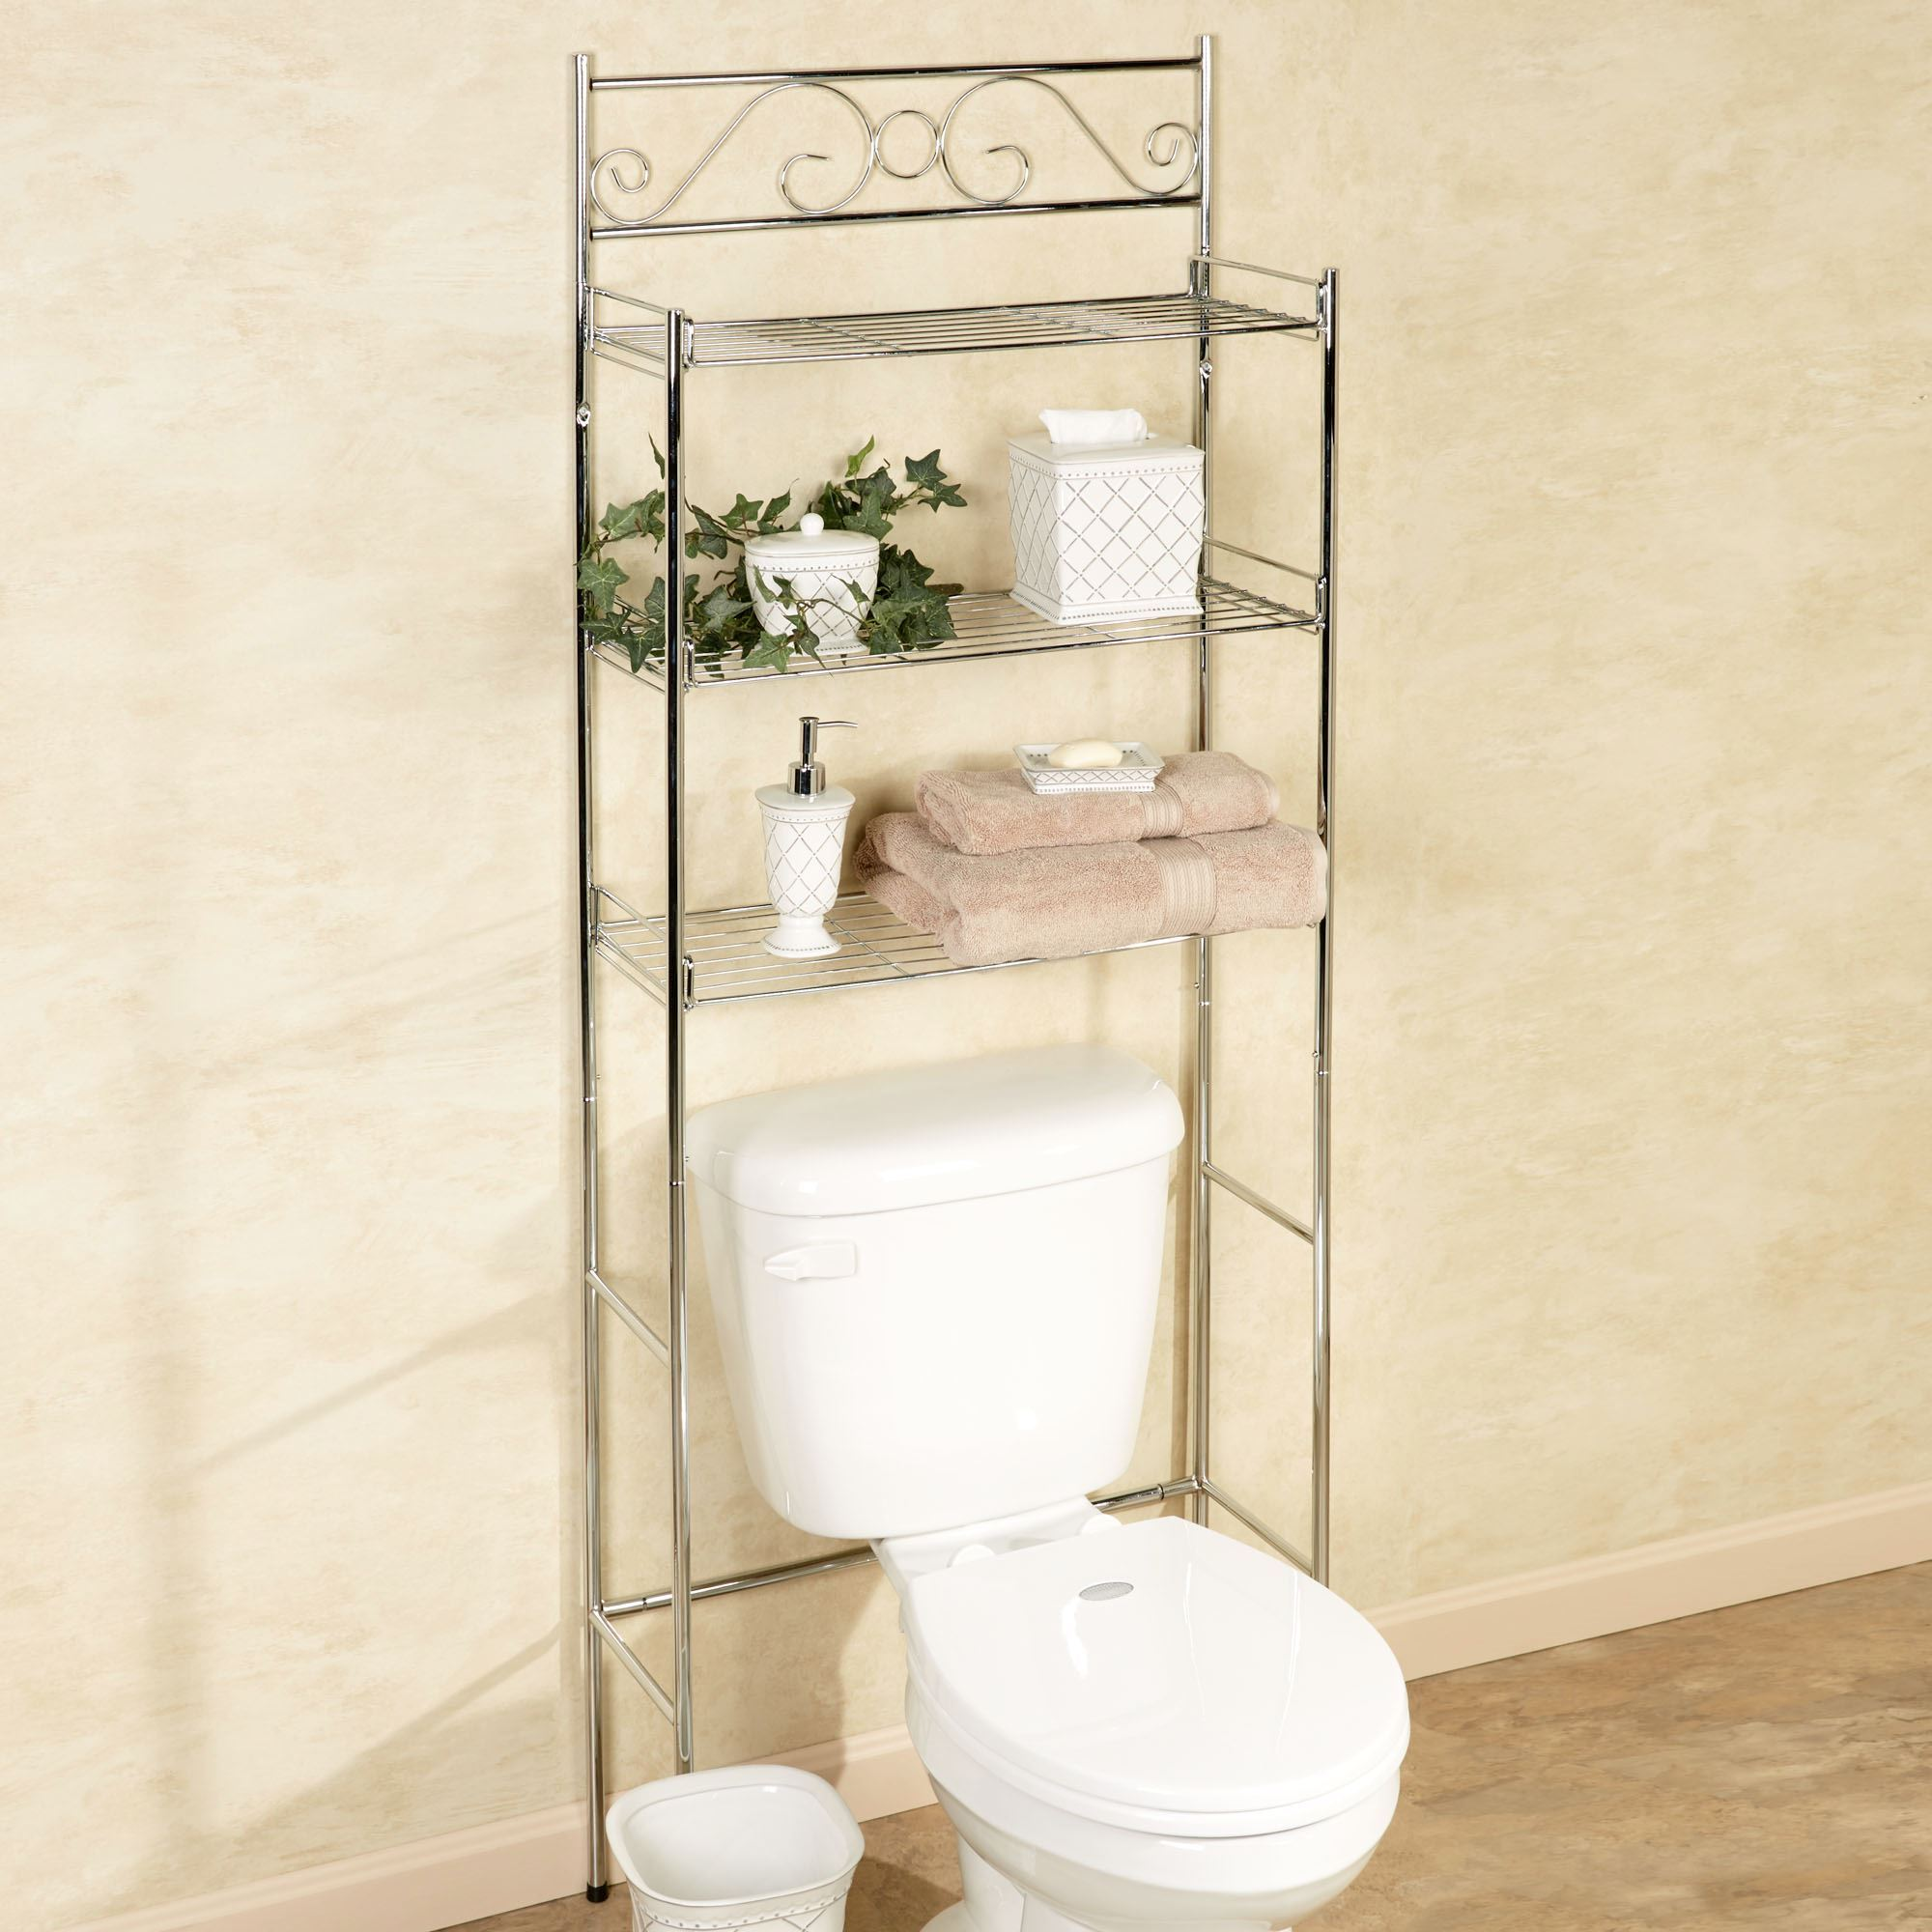 tank space cabinets ikea saver over toilet the bathroom glass supple target storage tremendeous medicine admirable modish shelves vanity sets etagere cabinet gh espresso org lowes